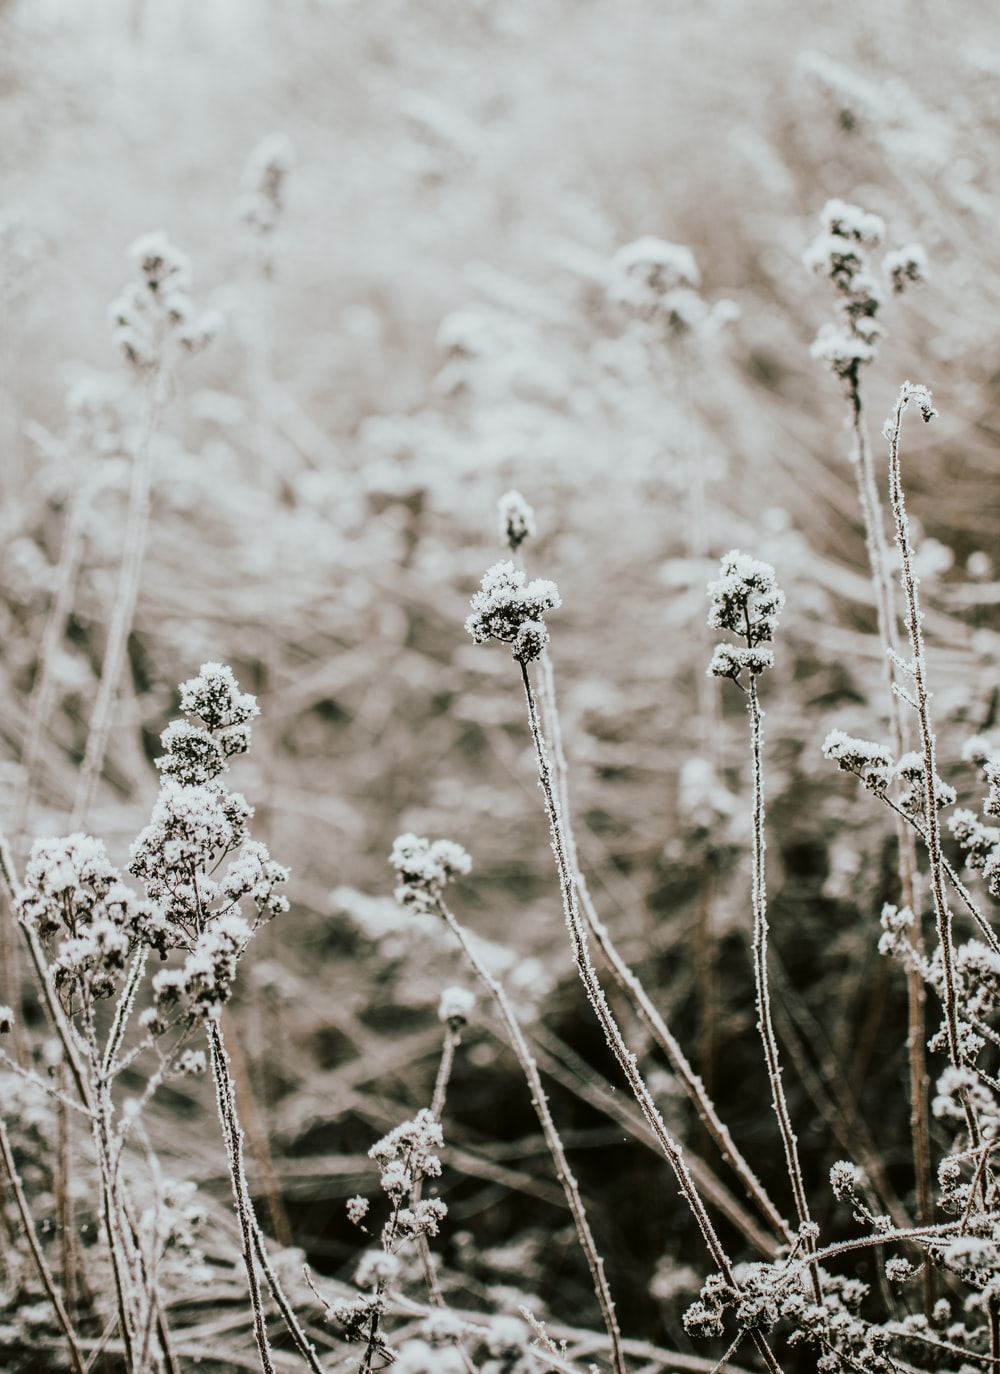 snow covered plant during daytime